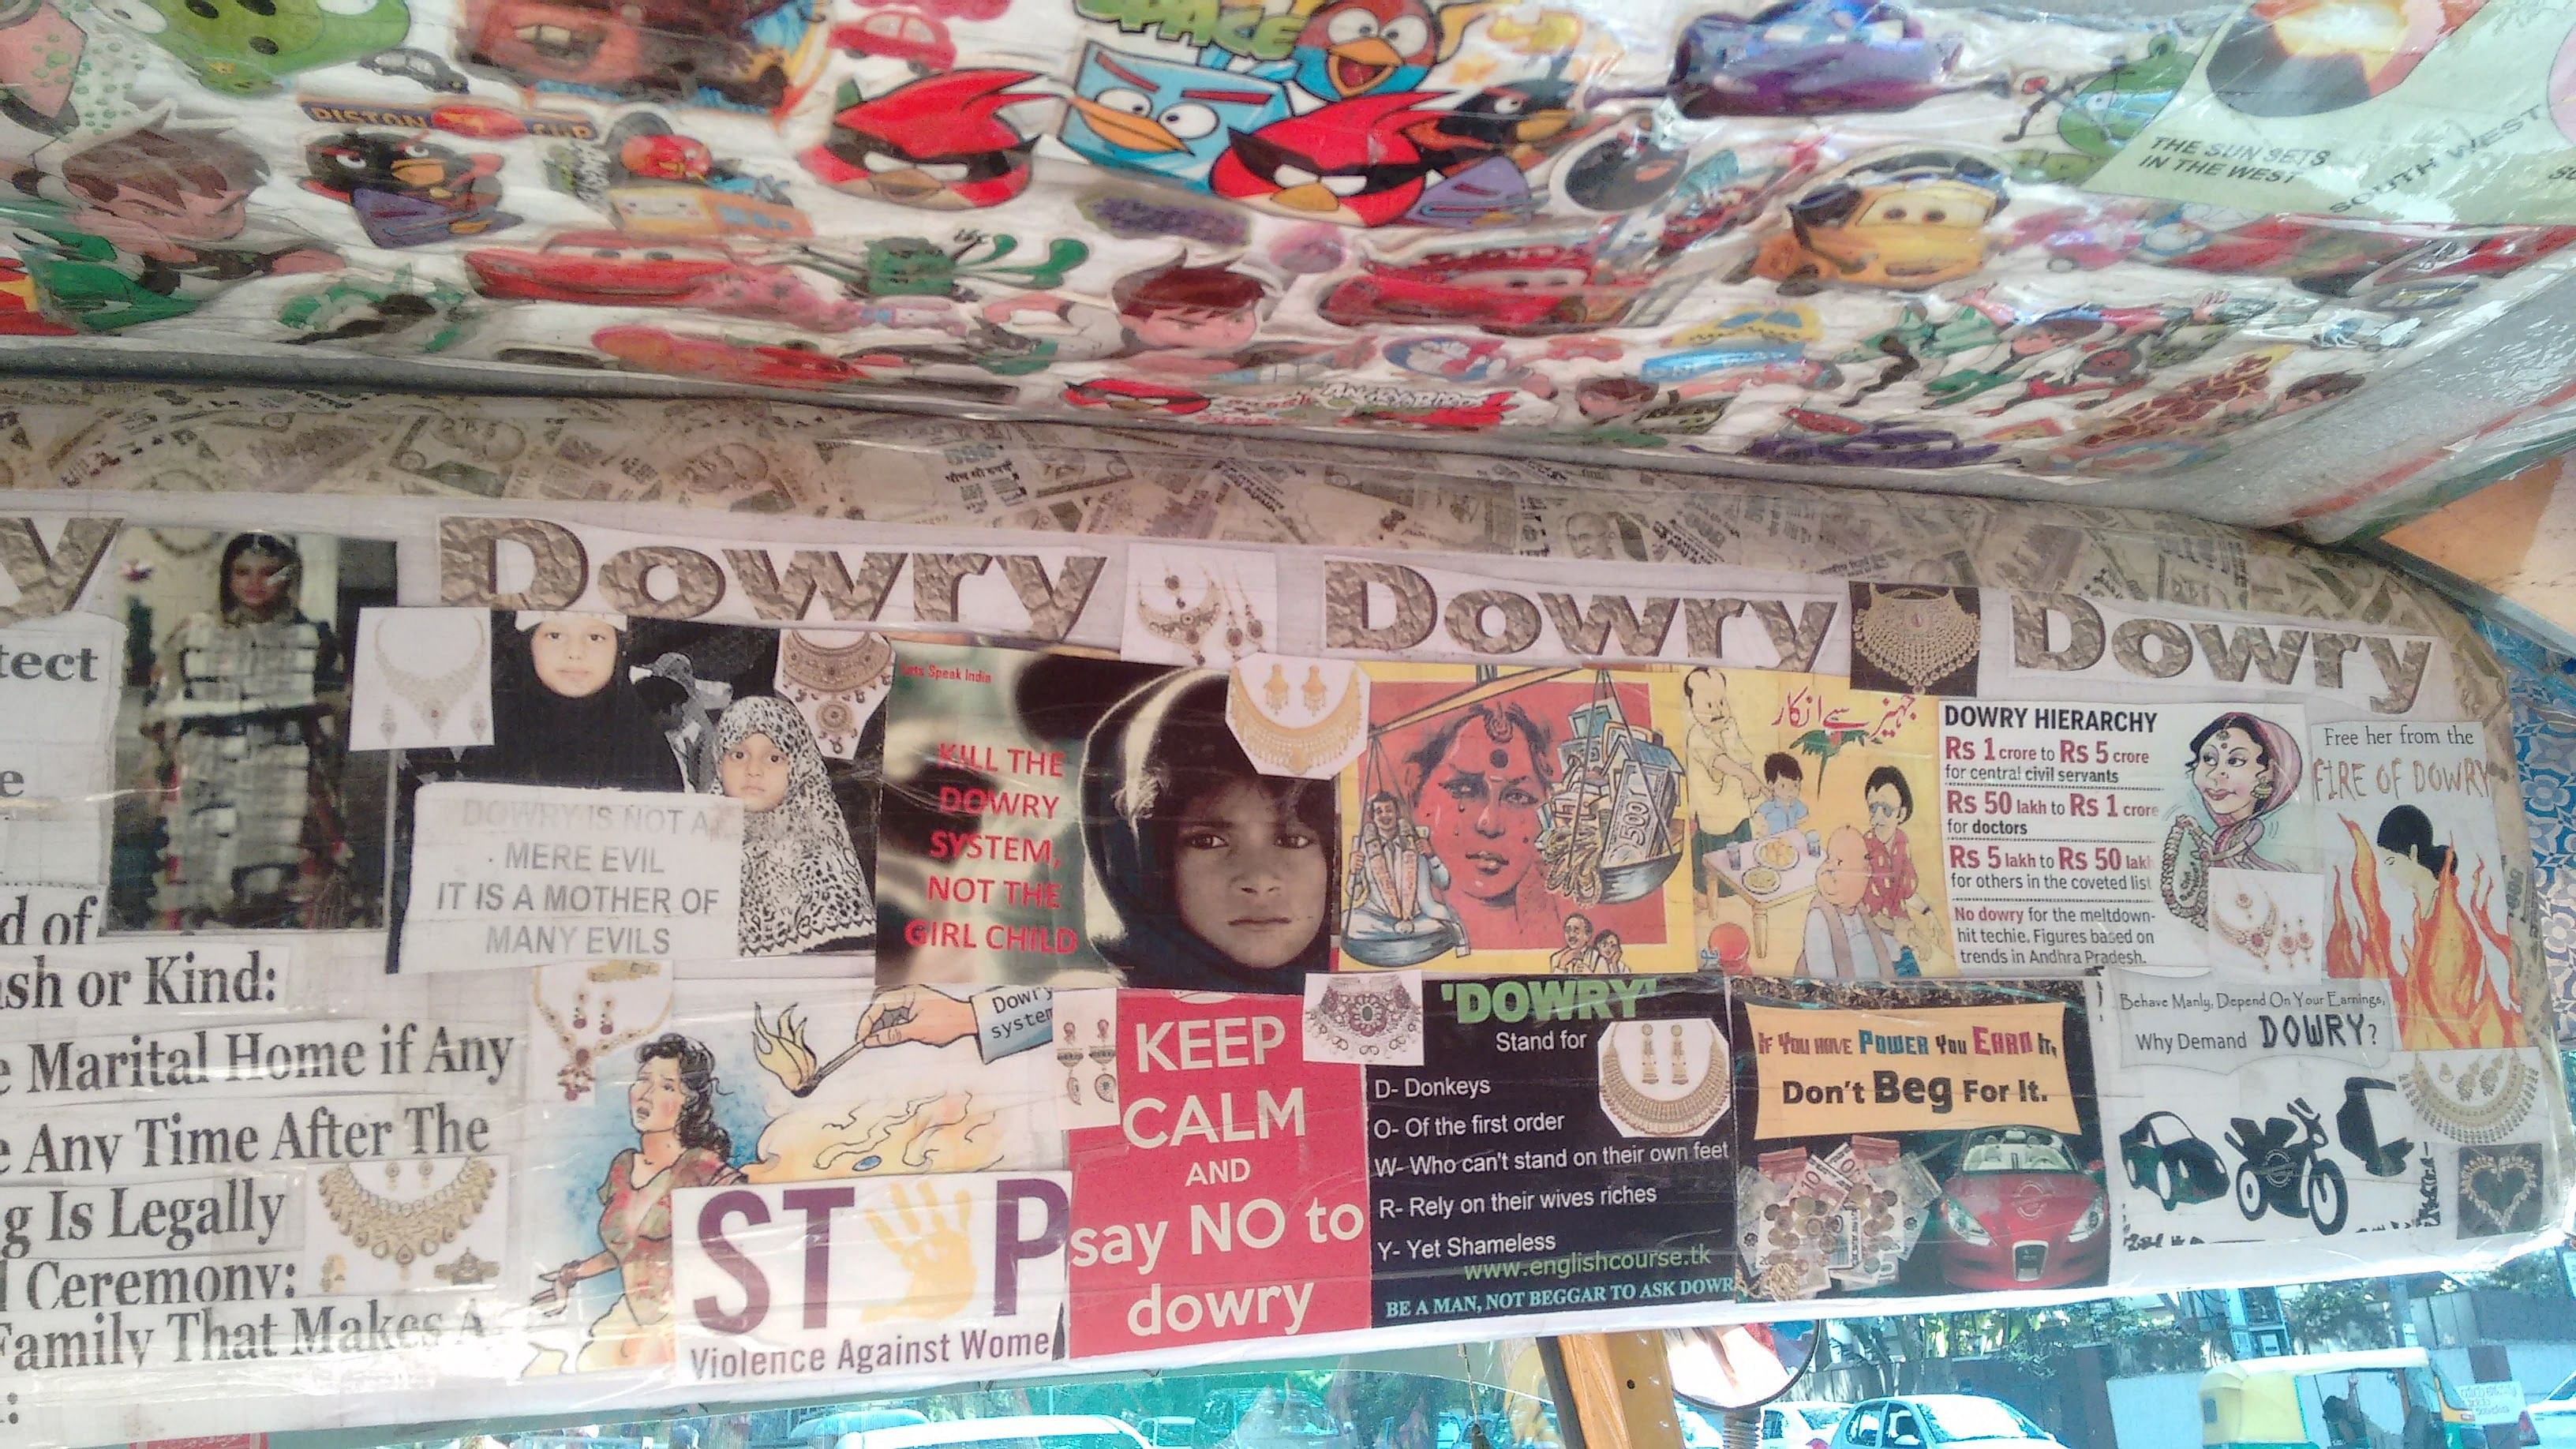 Anti-dowry posters